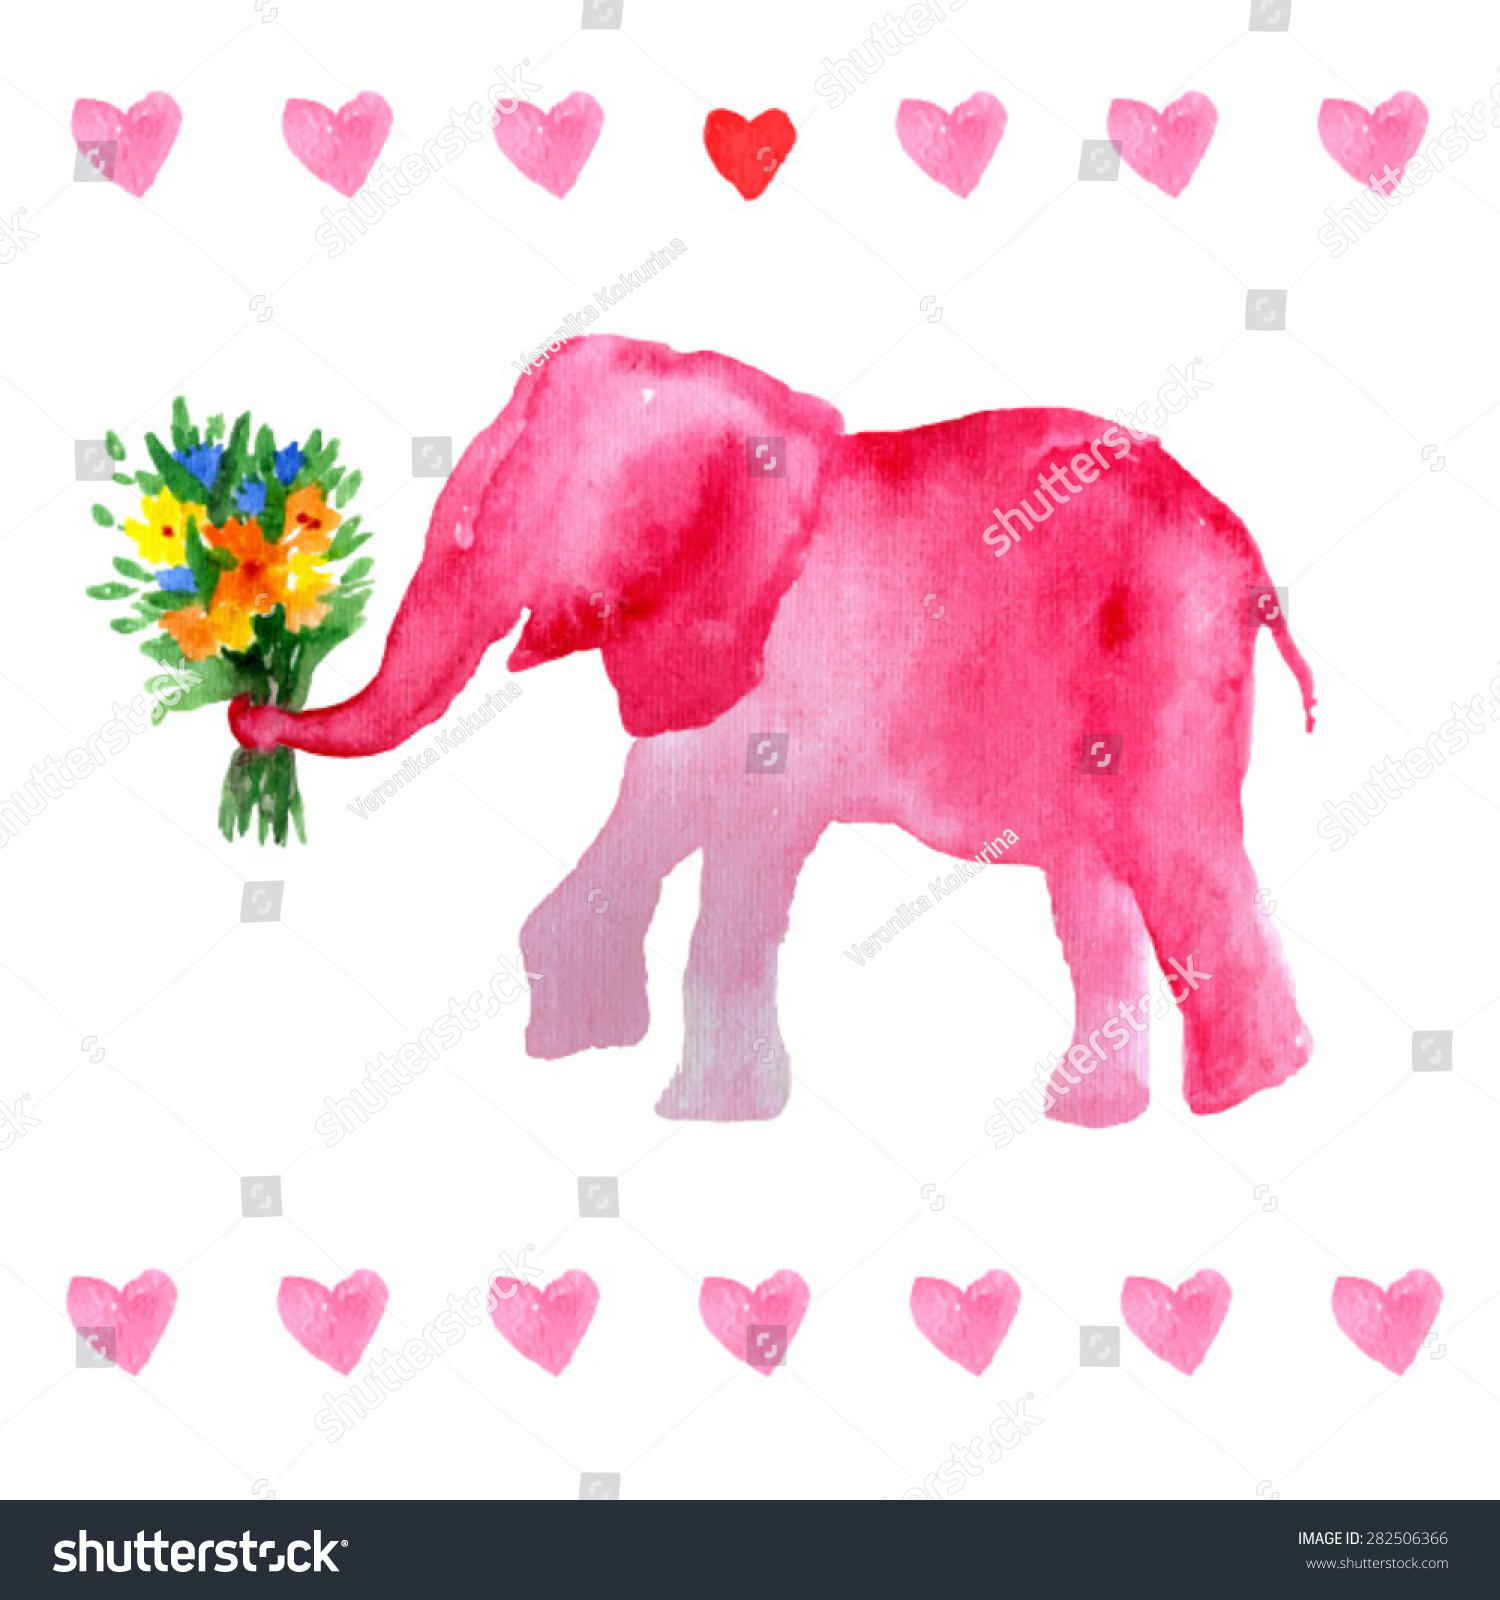 Elephant With Flowers. Romantic Pink Elephant. Valentineu0027s Postcard. Sweet  Animals. Watercolor Elephant